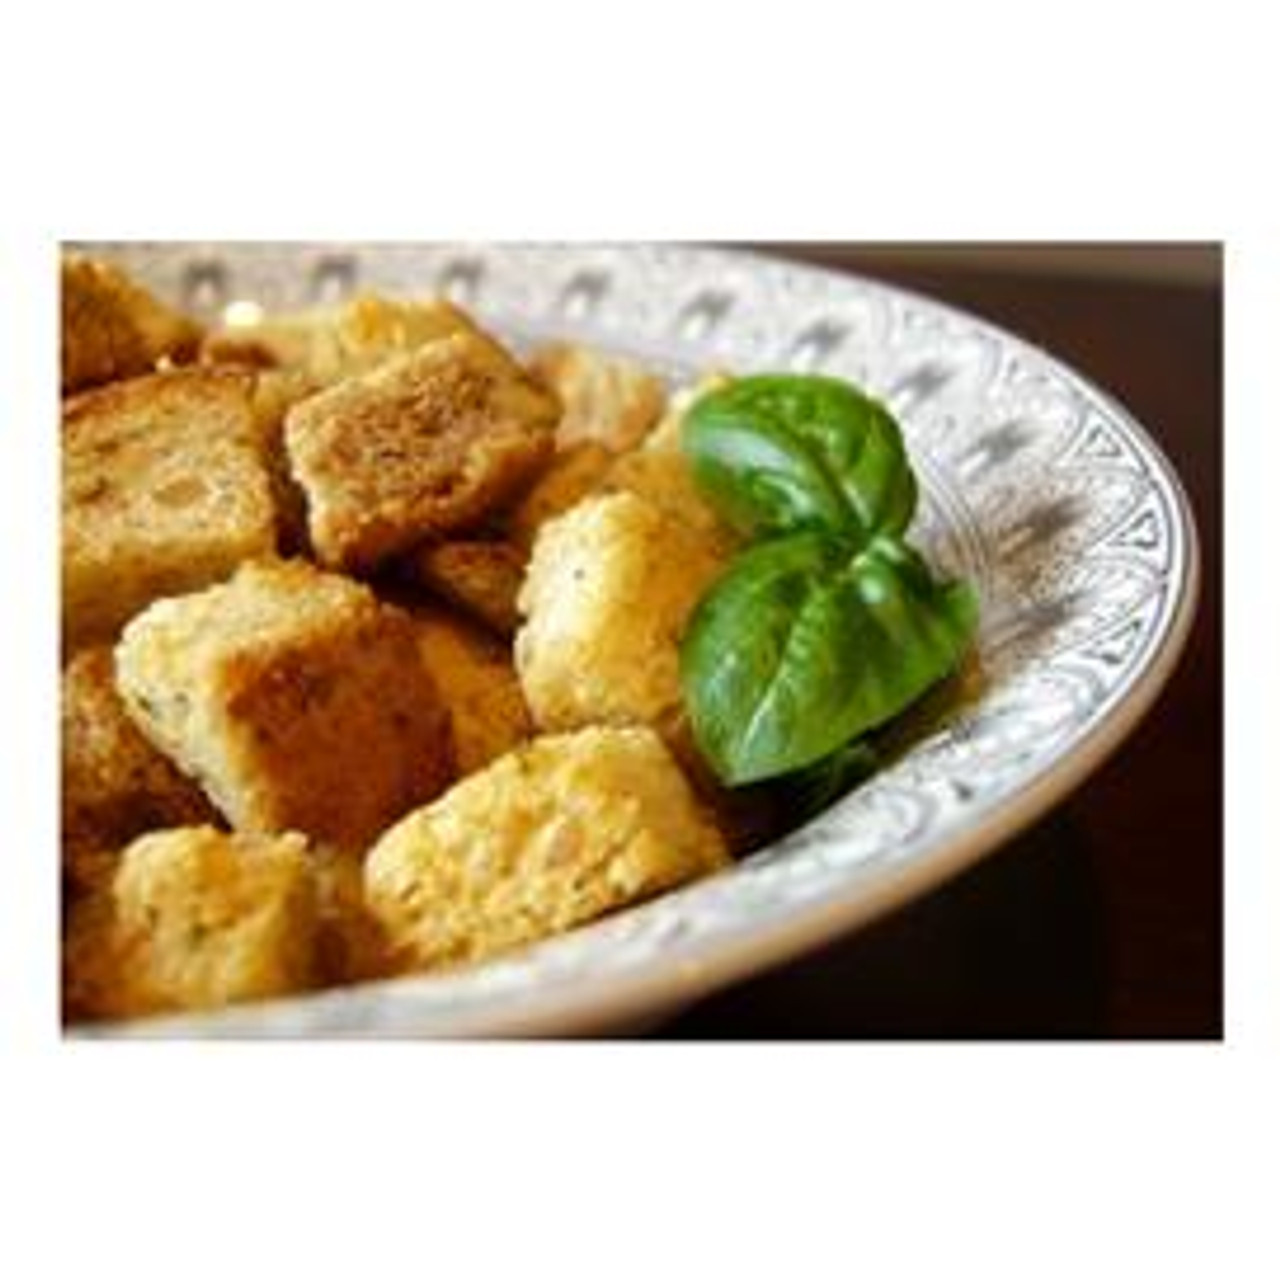 Iavarone Bros Own Garlic & Herb Croutons